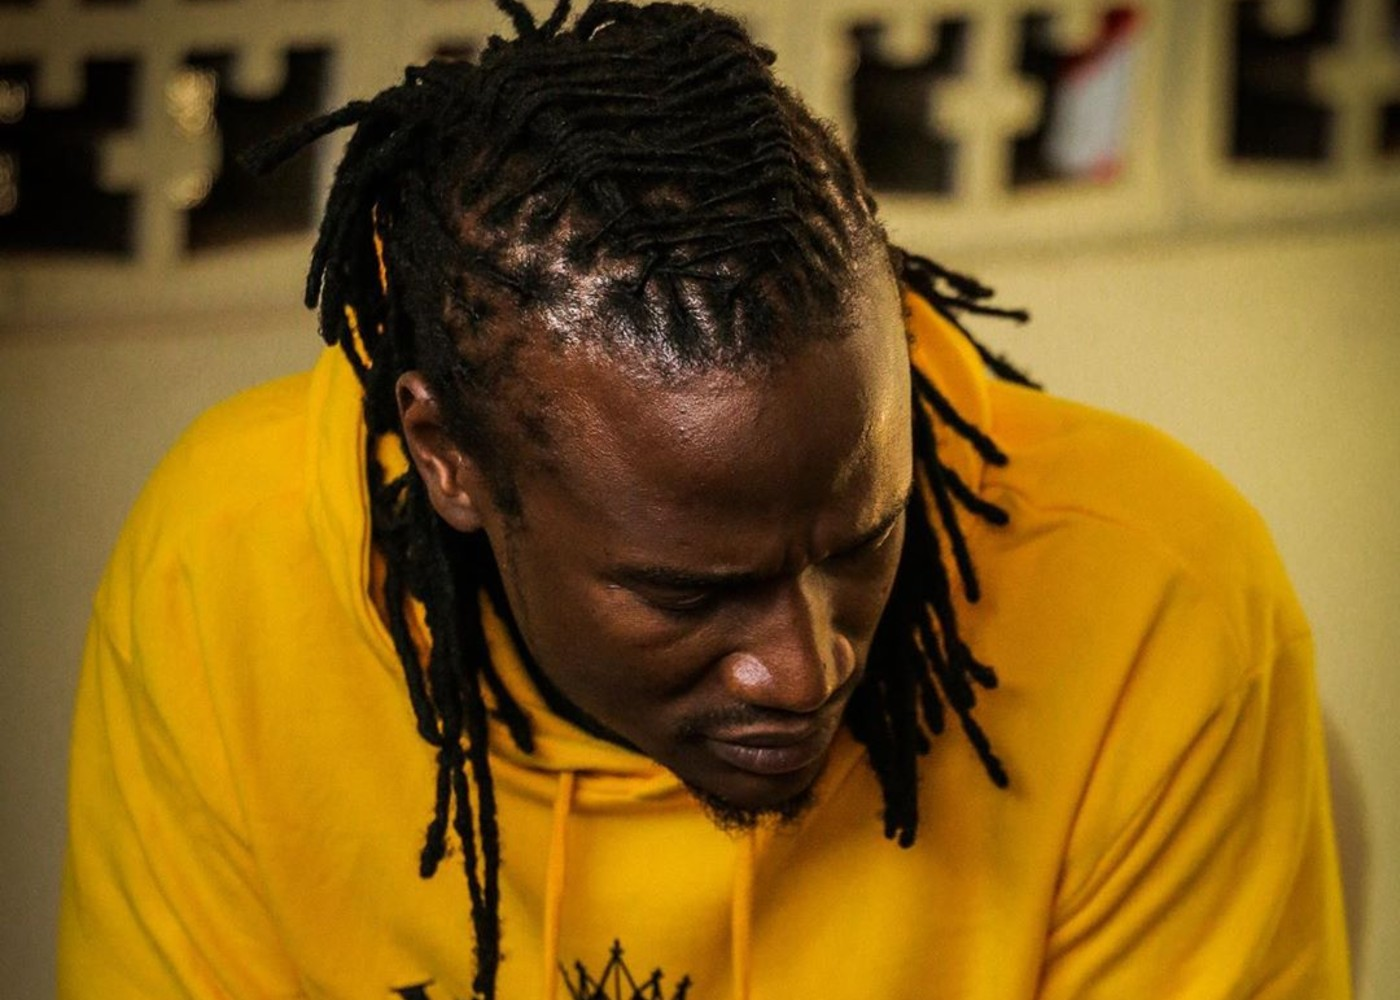 Who Is Jah Prayzah - Everything You Need To Know About Him!